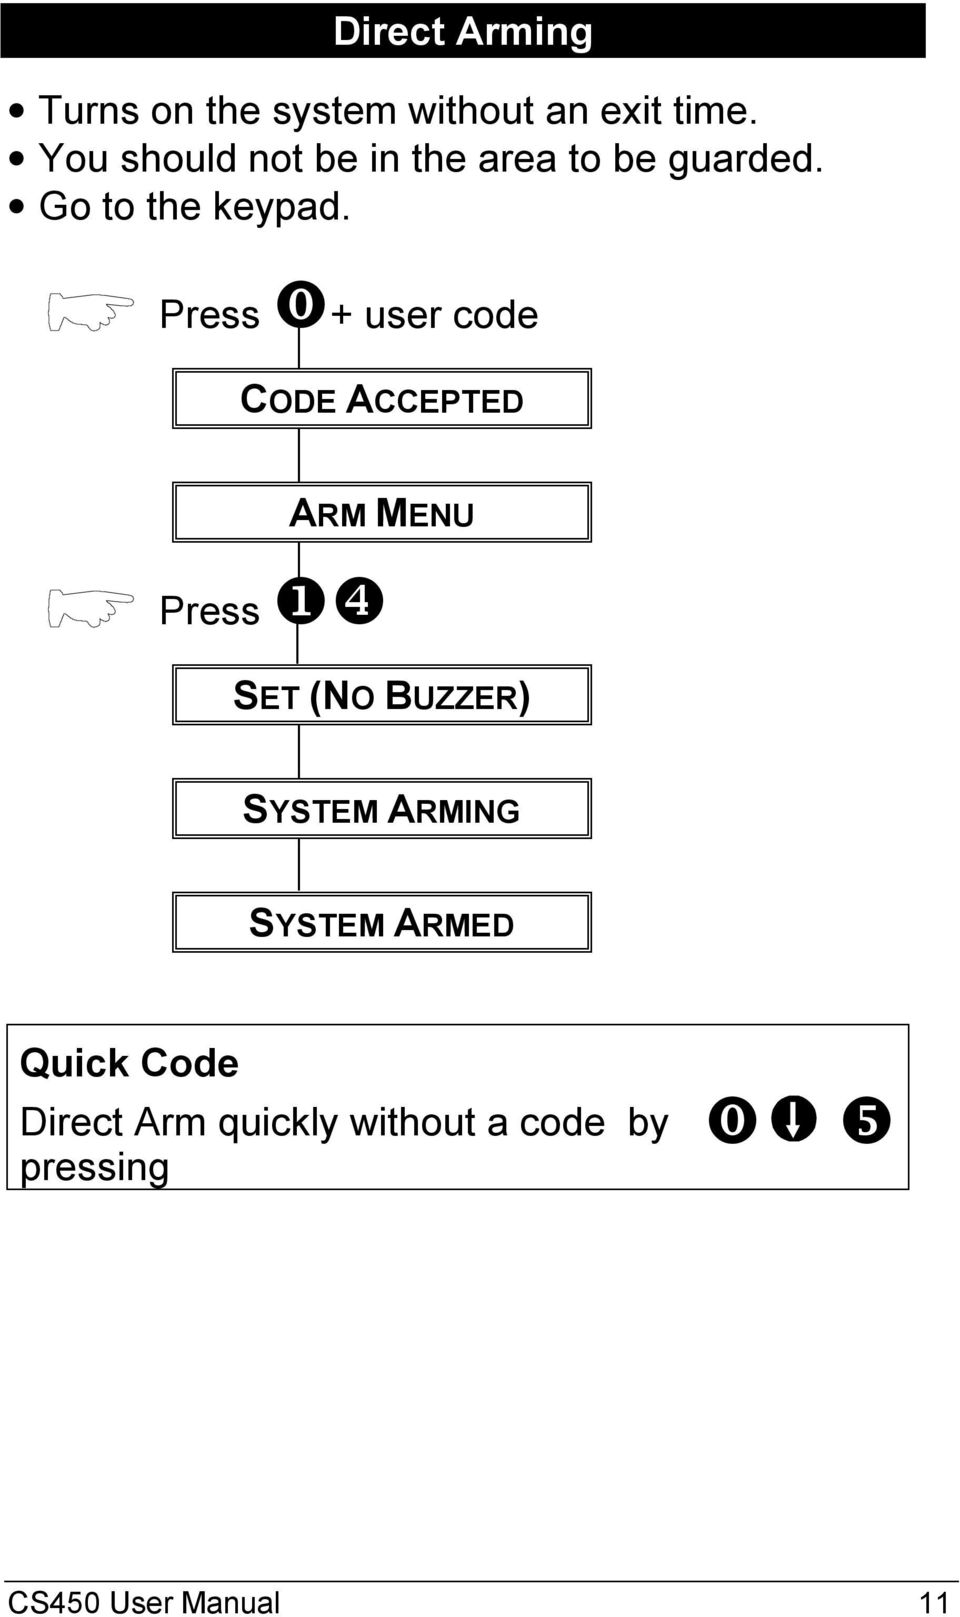 ⓿+ user code CODE ACCEPTED ARM MENU ❶❹ SET (NO BUZZER) SYSTEM ARMING